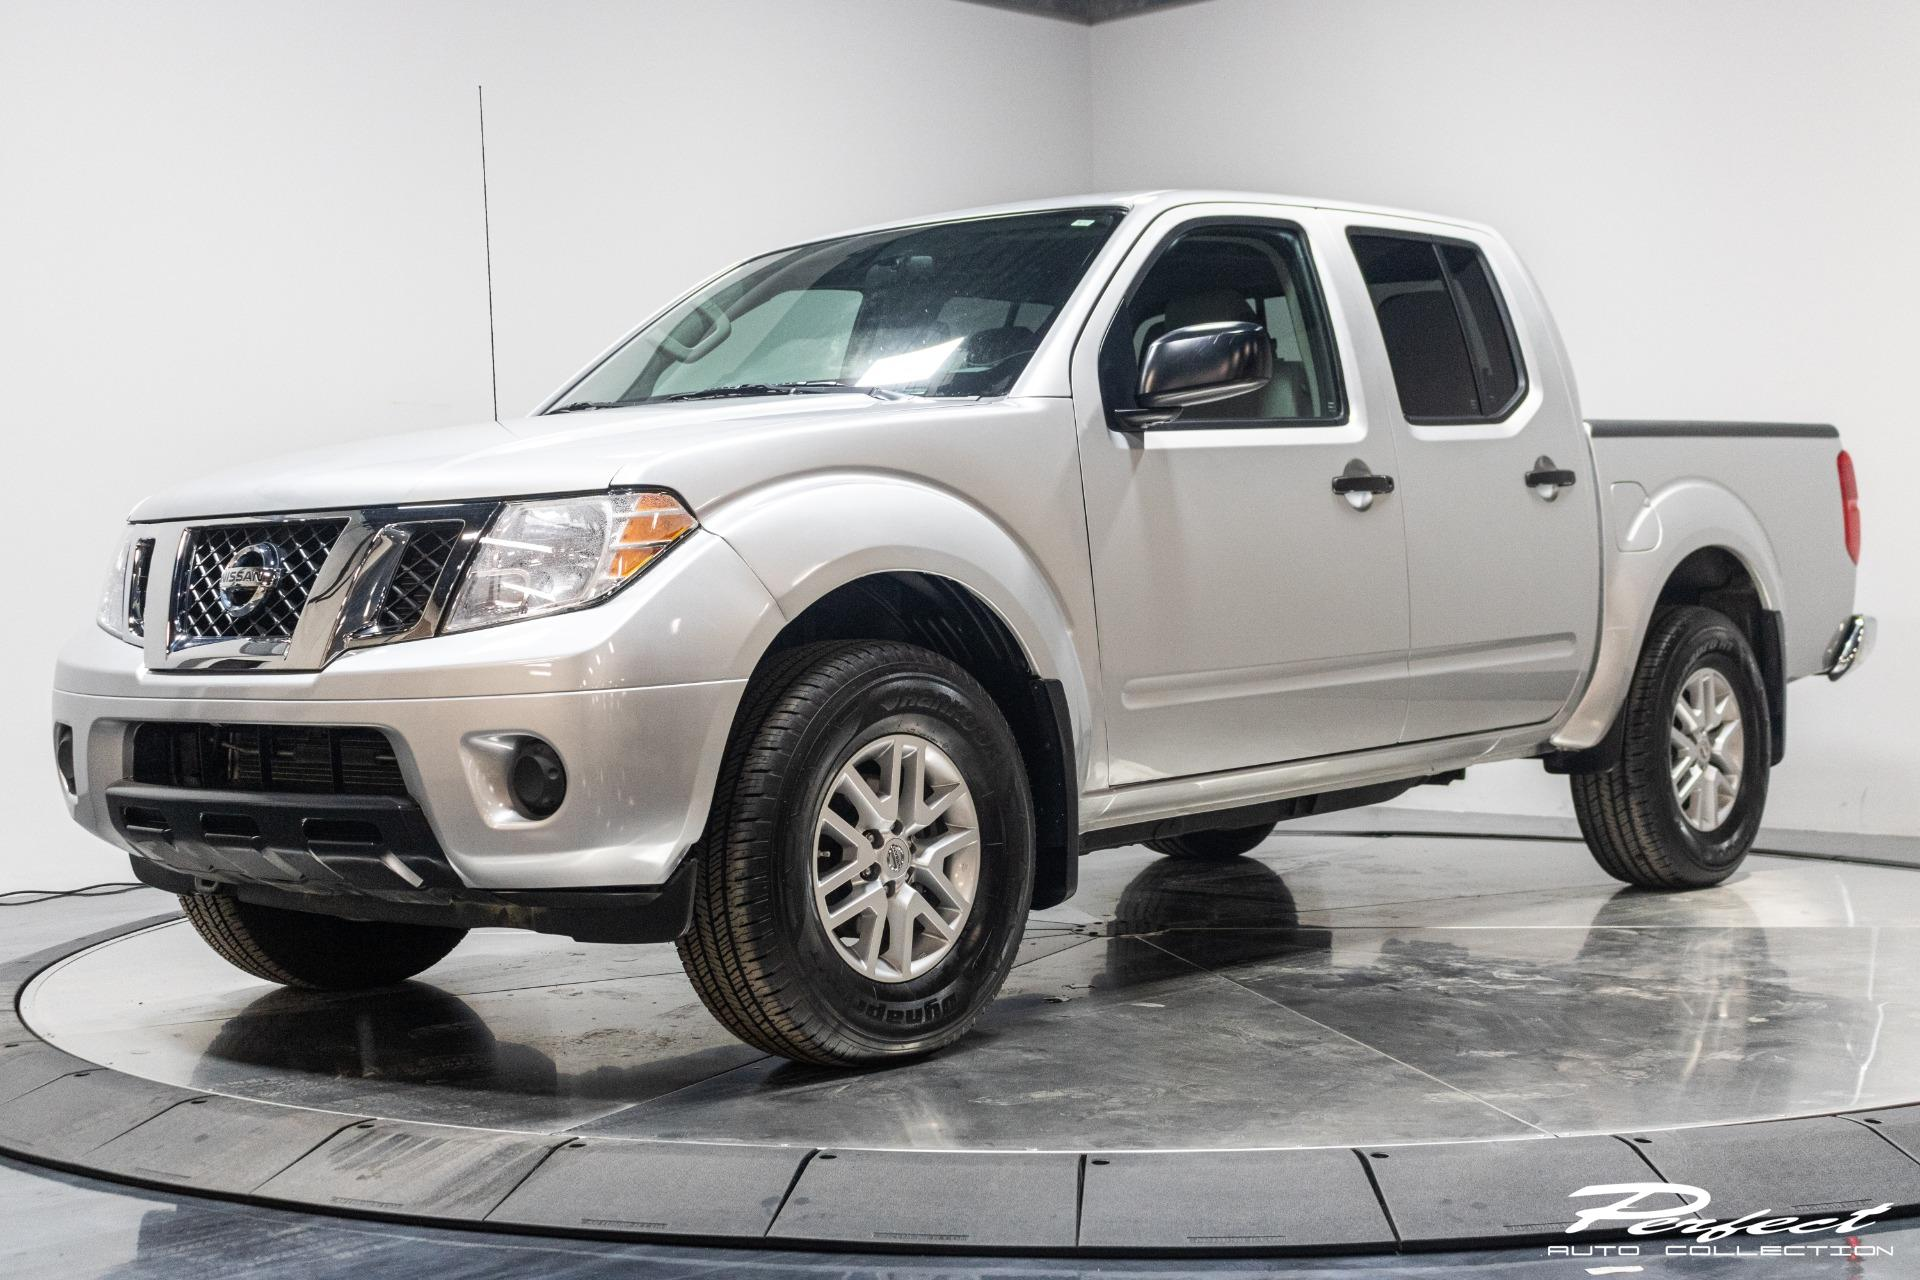 Used 2019 Nissan Frontier SV for sale $20,493 at Perfect Auto Collection in Akron OH 44310 1